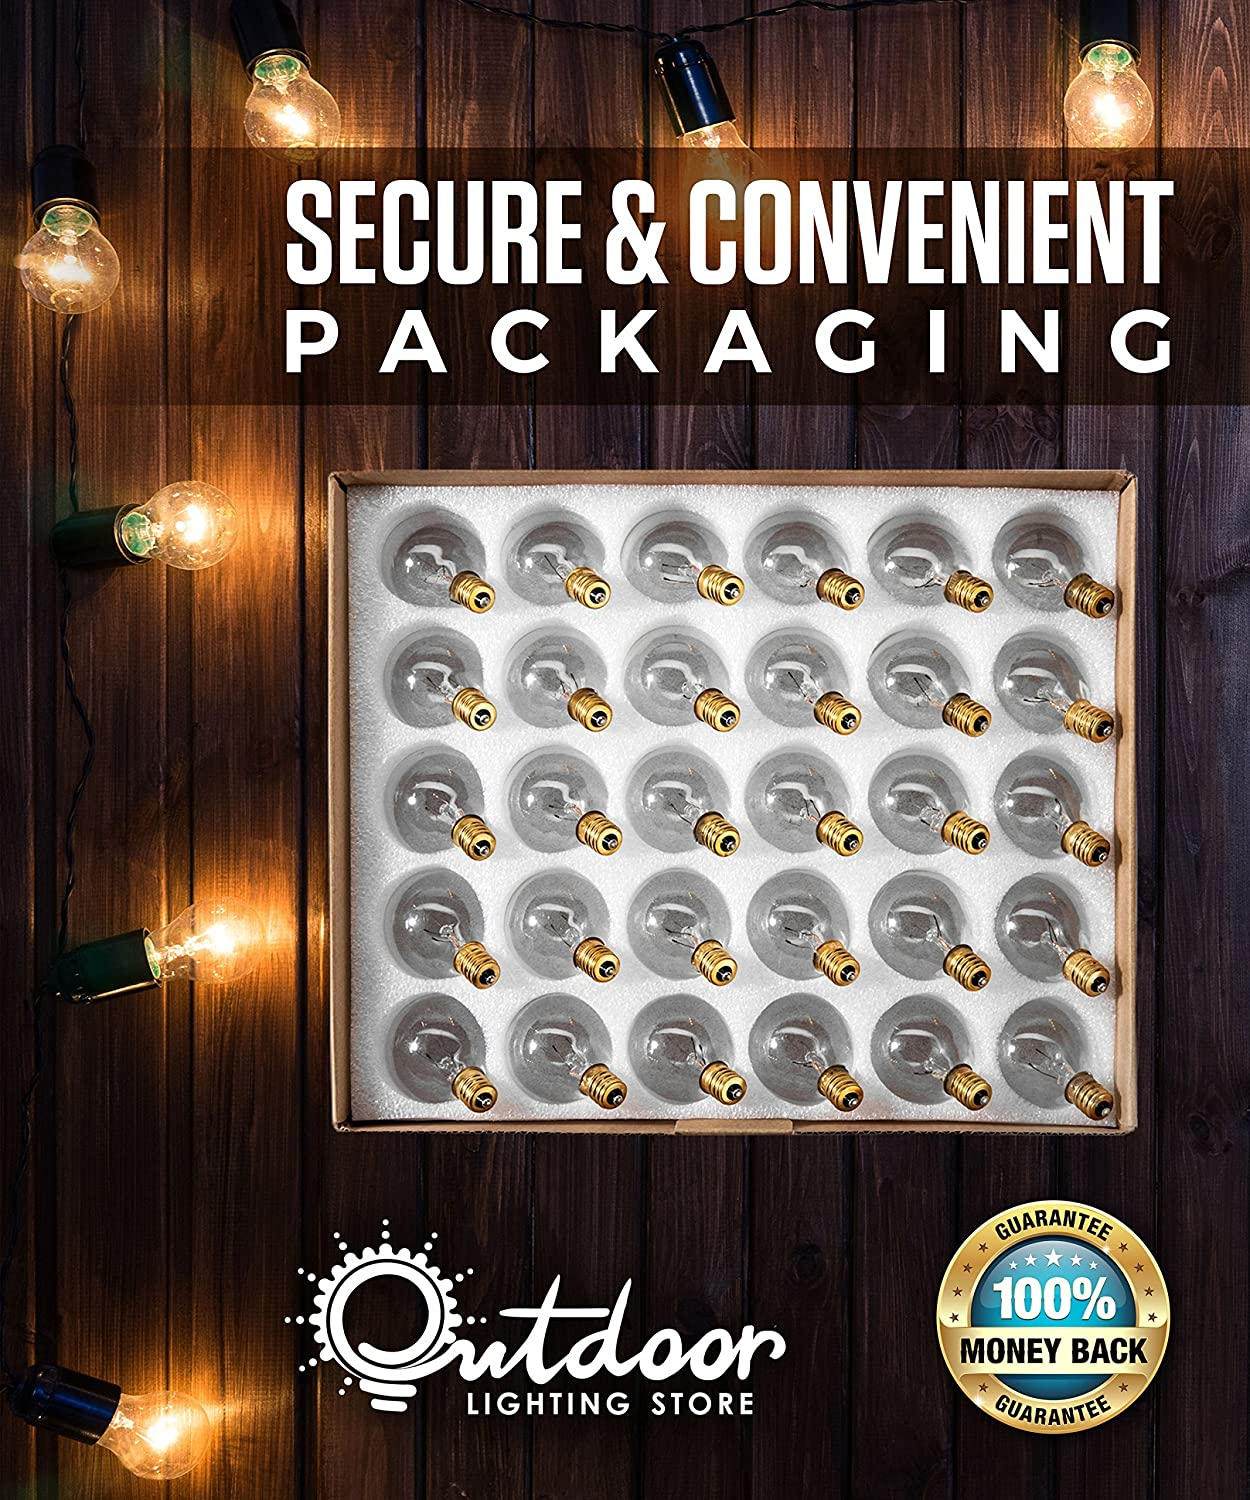 Fits E12 and C7 Sockets Candelabra Screw Base 30 Pack of G40 Replacement Bulbs: 5 Watt G40 Globe Bulbs for String Lights Secure /& Convenient Packaging Indoor//Outdoor Use Clear Glass G40 Bulbs